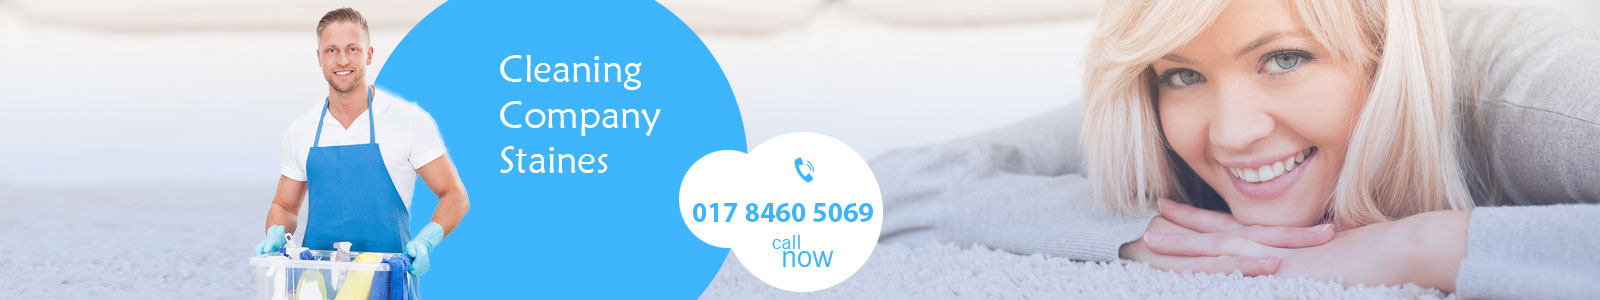 cleaning-company-staines